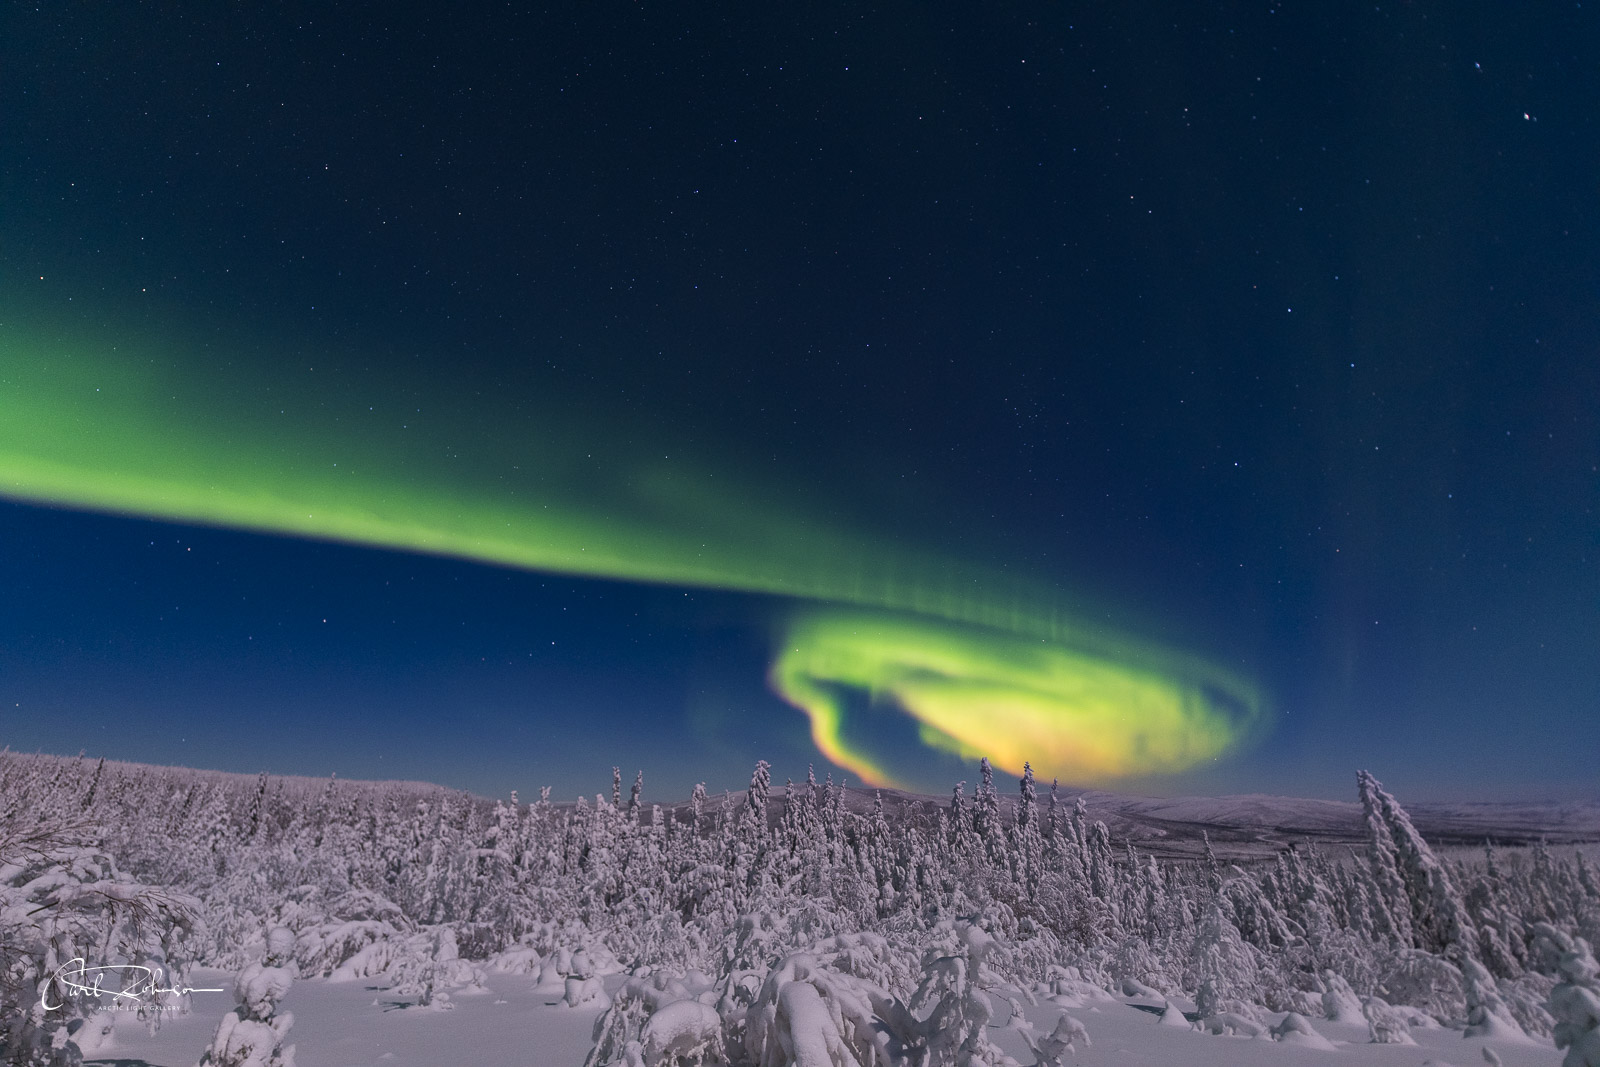 The aurora borealis grows like the cyclone of a tornado over an area with frosty trees.